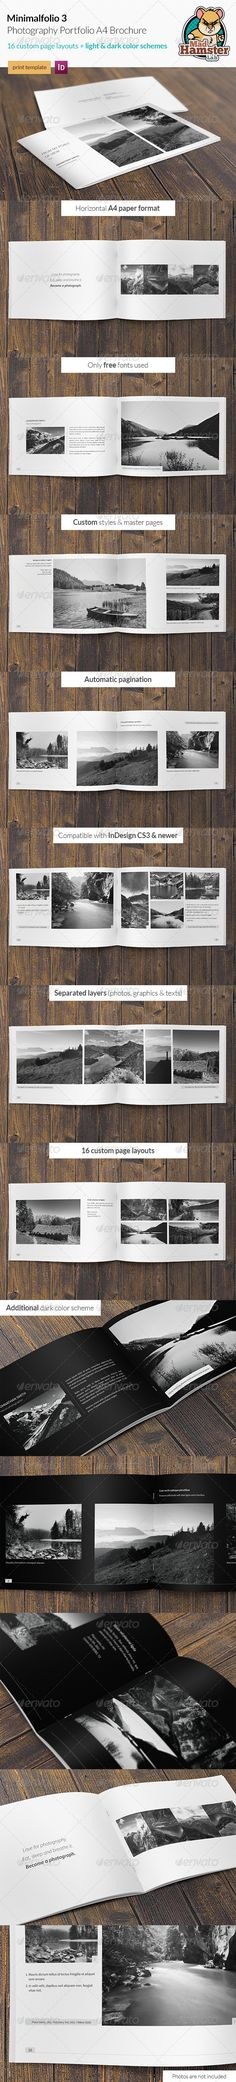 Buy Minimalfolio 3 Photography Portfolio Brochure by MadHamsterLab on GraphicRiver. Minimalfolio 3 is a horizontal photography portfolio brochure. Minimal style makes a clean and elegant look. Cv Inspiration, Graphic Design Inspiration, Portfolio Layout, Portfolio Design, Portfolio Booklet, Book Design Layout, Print Layout, Web Design, Presentation Layout